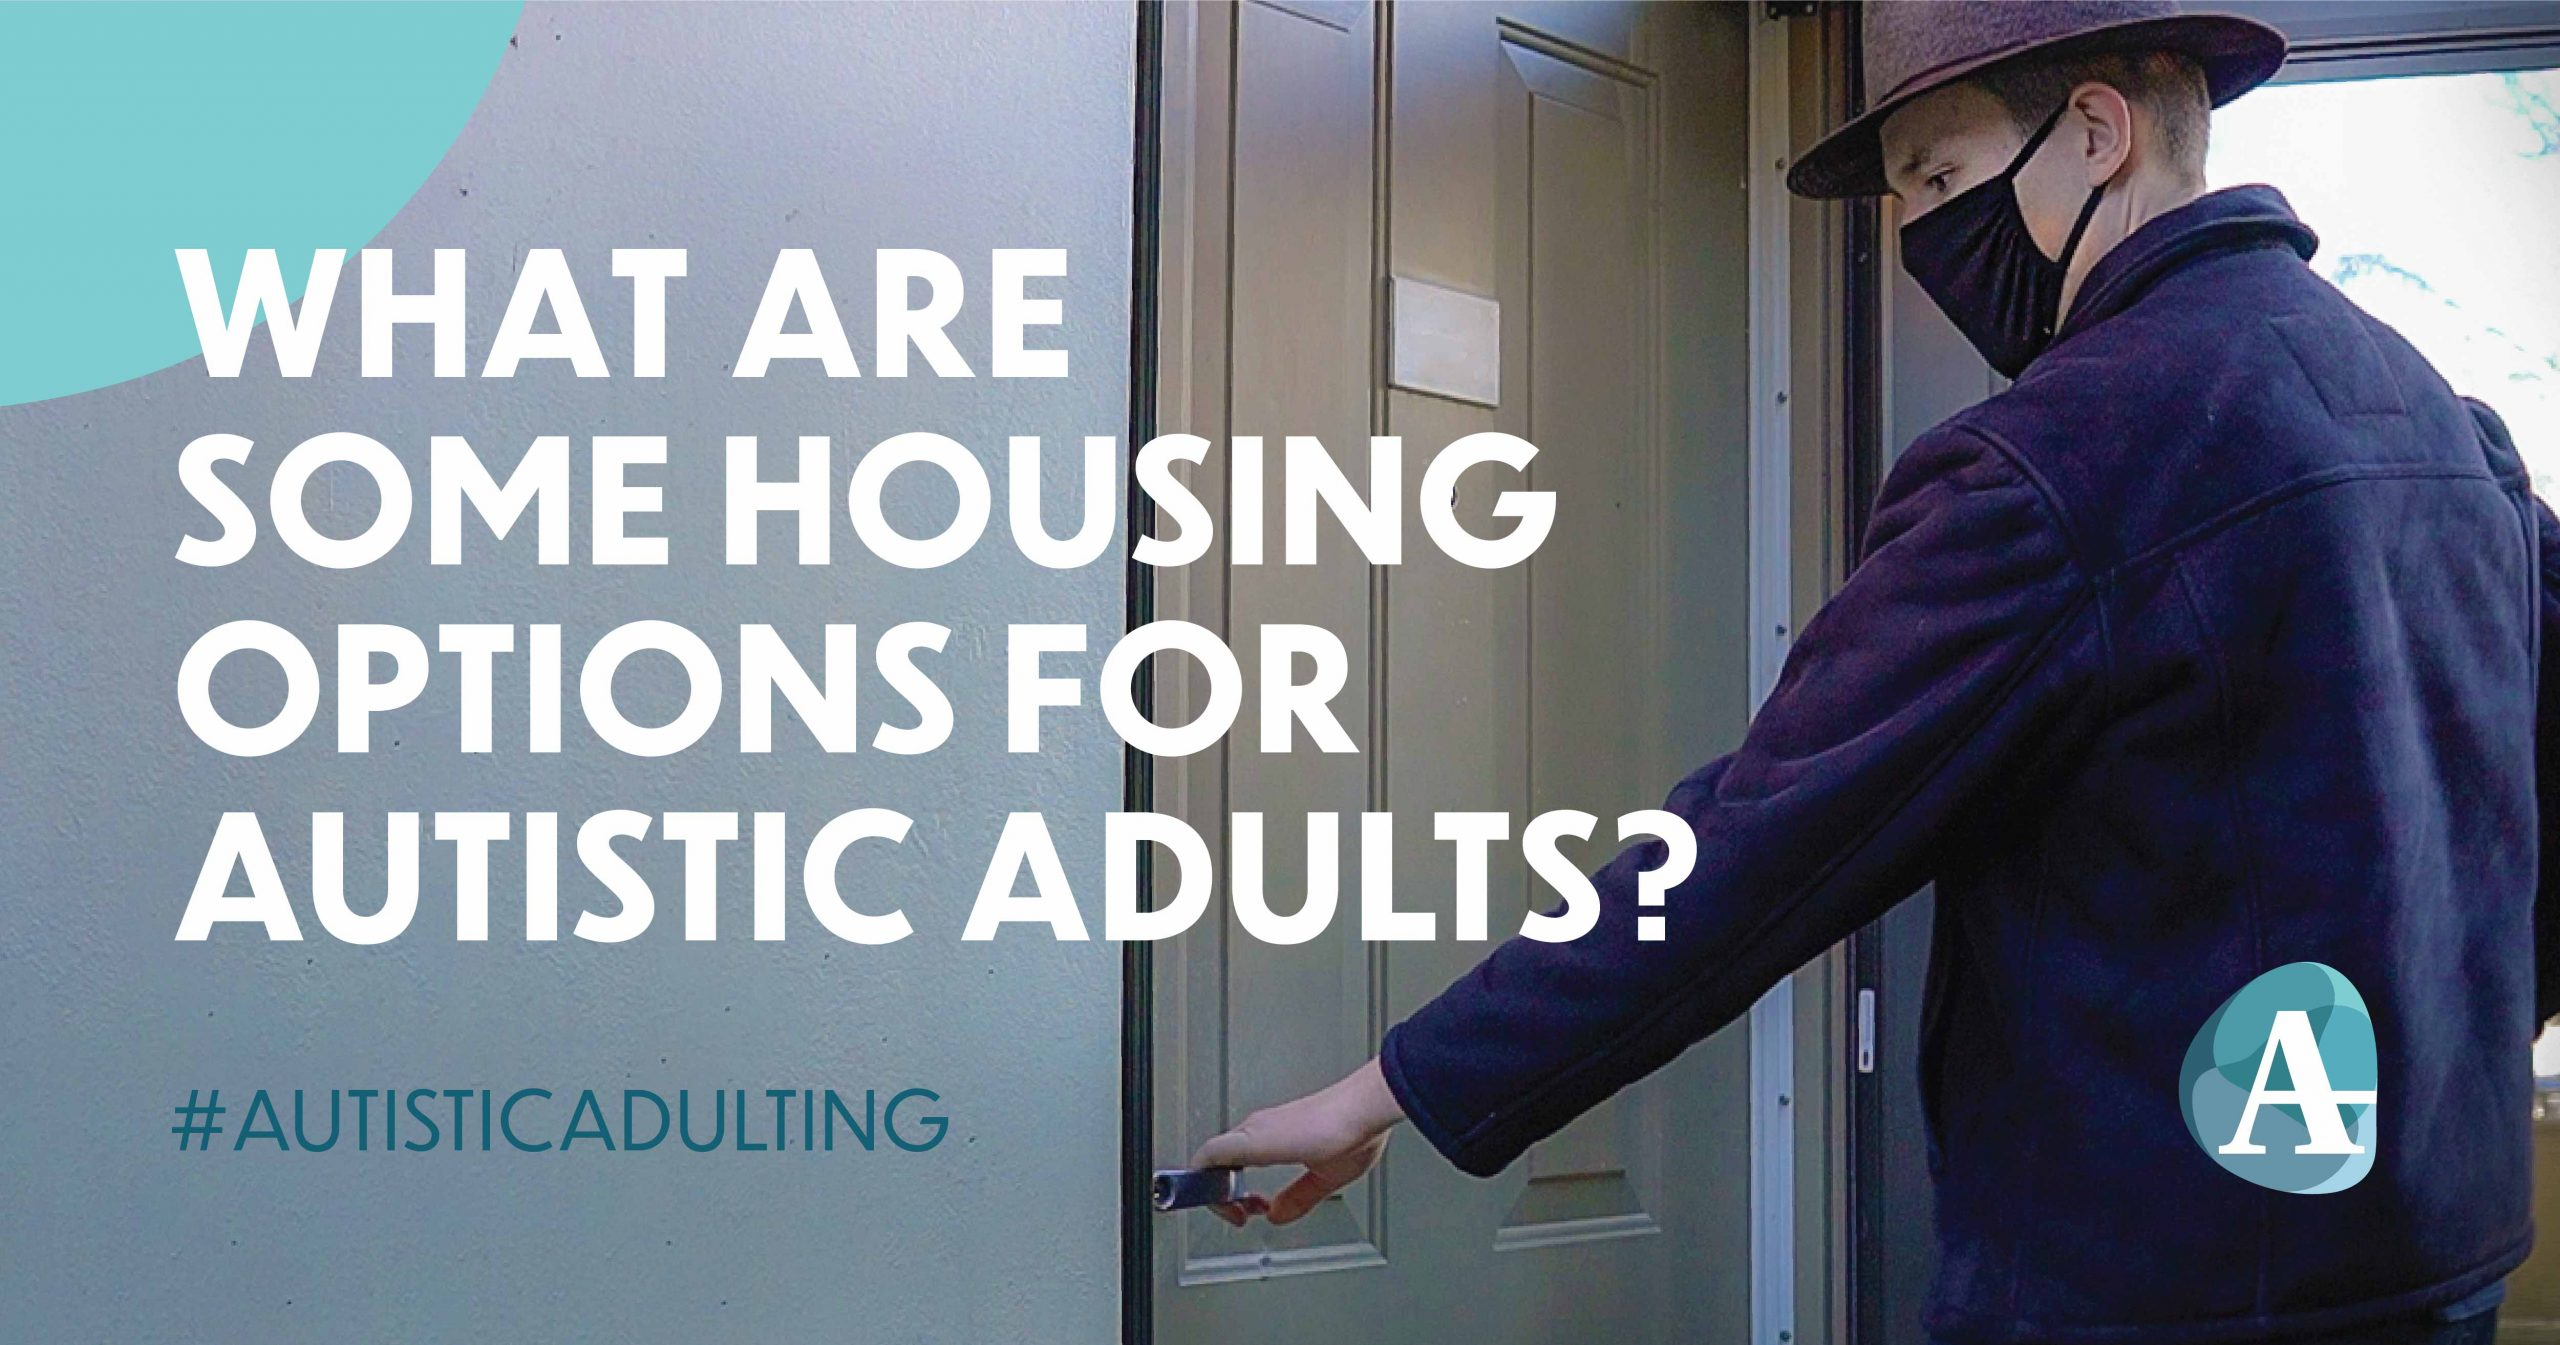 what are some housing options for autistic adults?